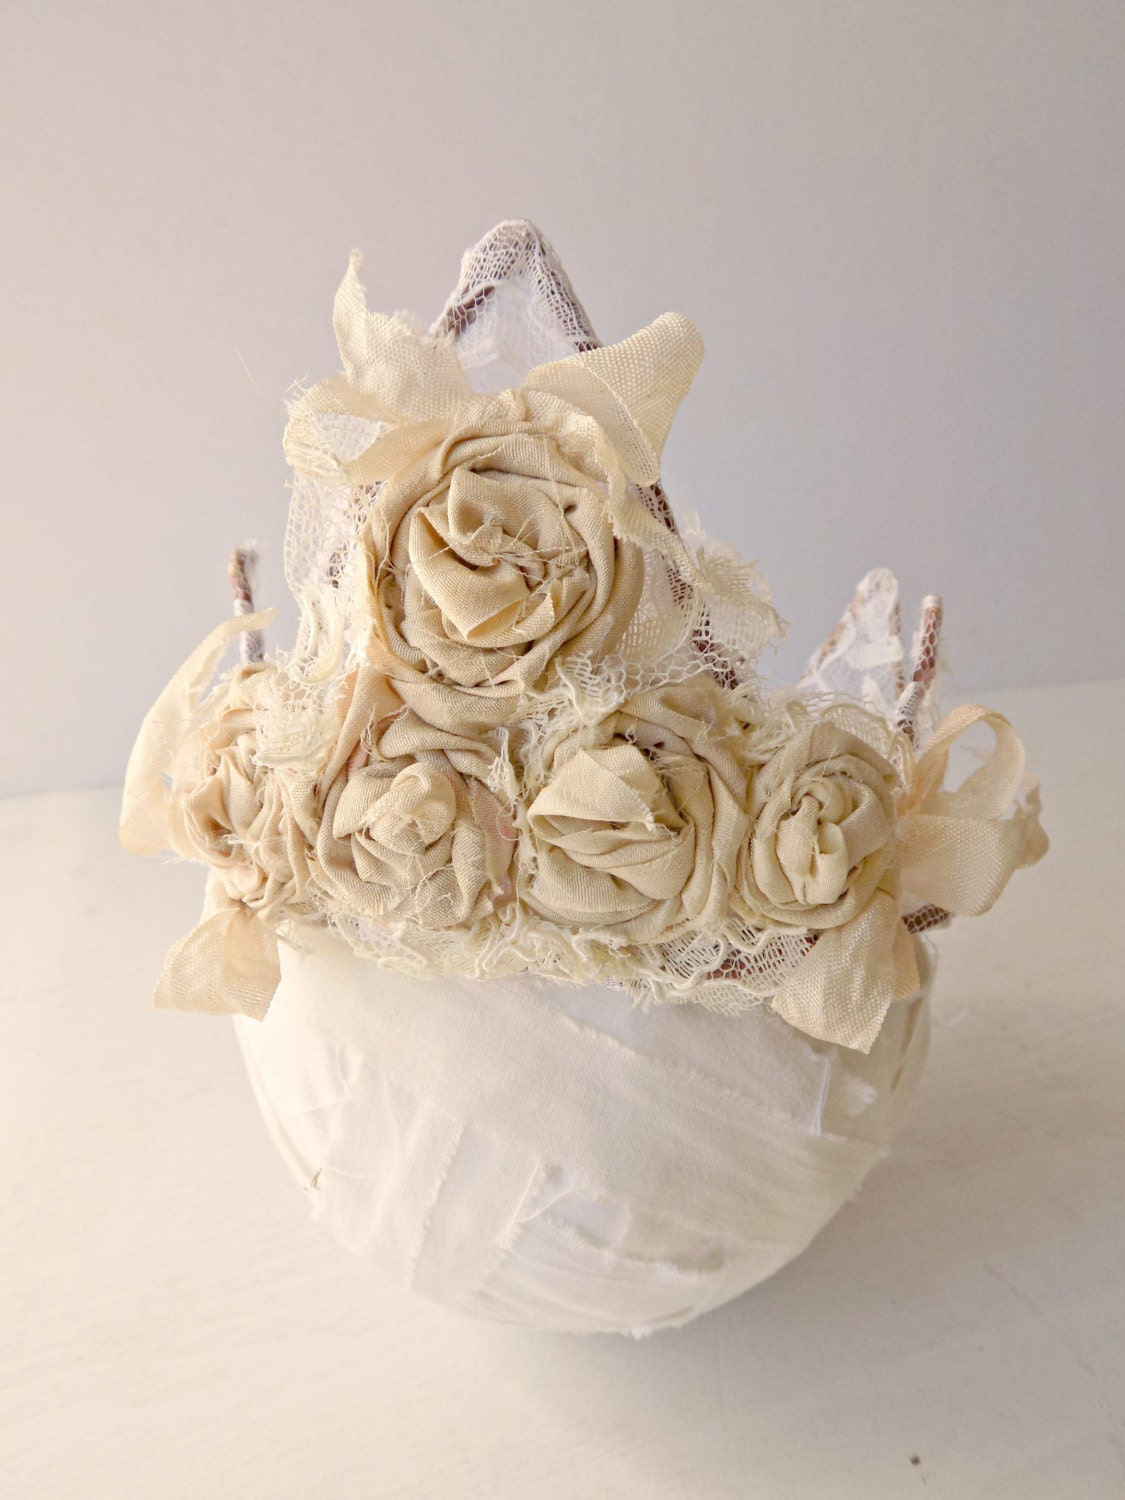 French chic lace crown cottage chic home decor shabby chic for Lace home decor